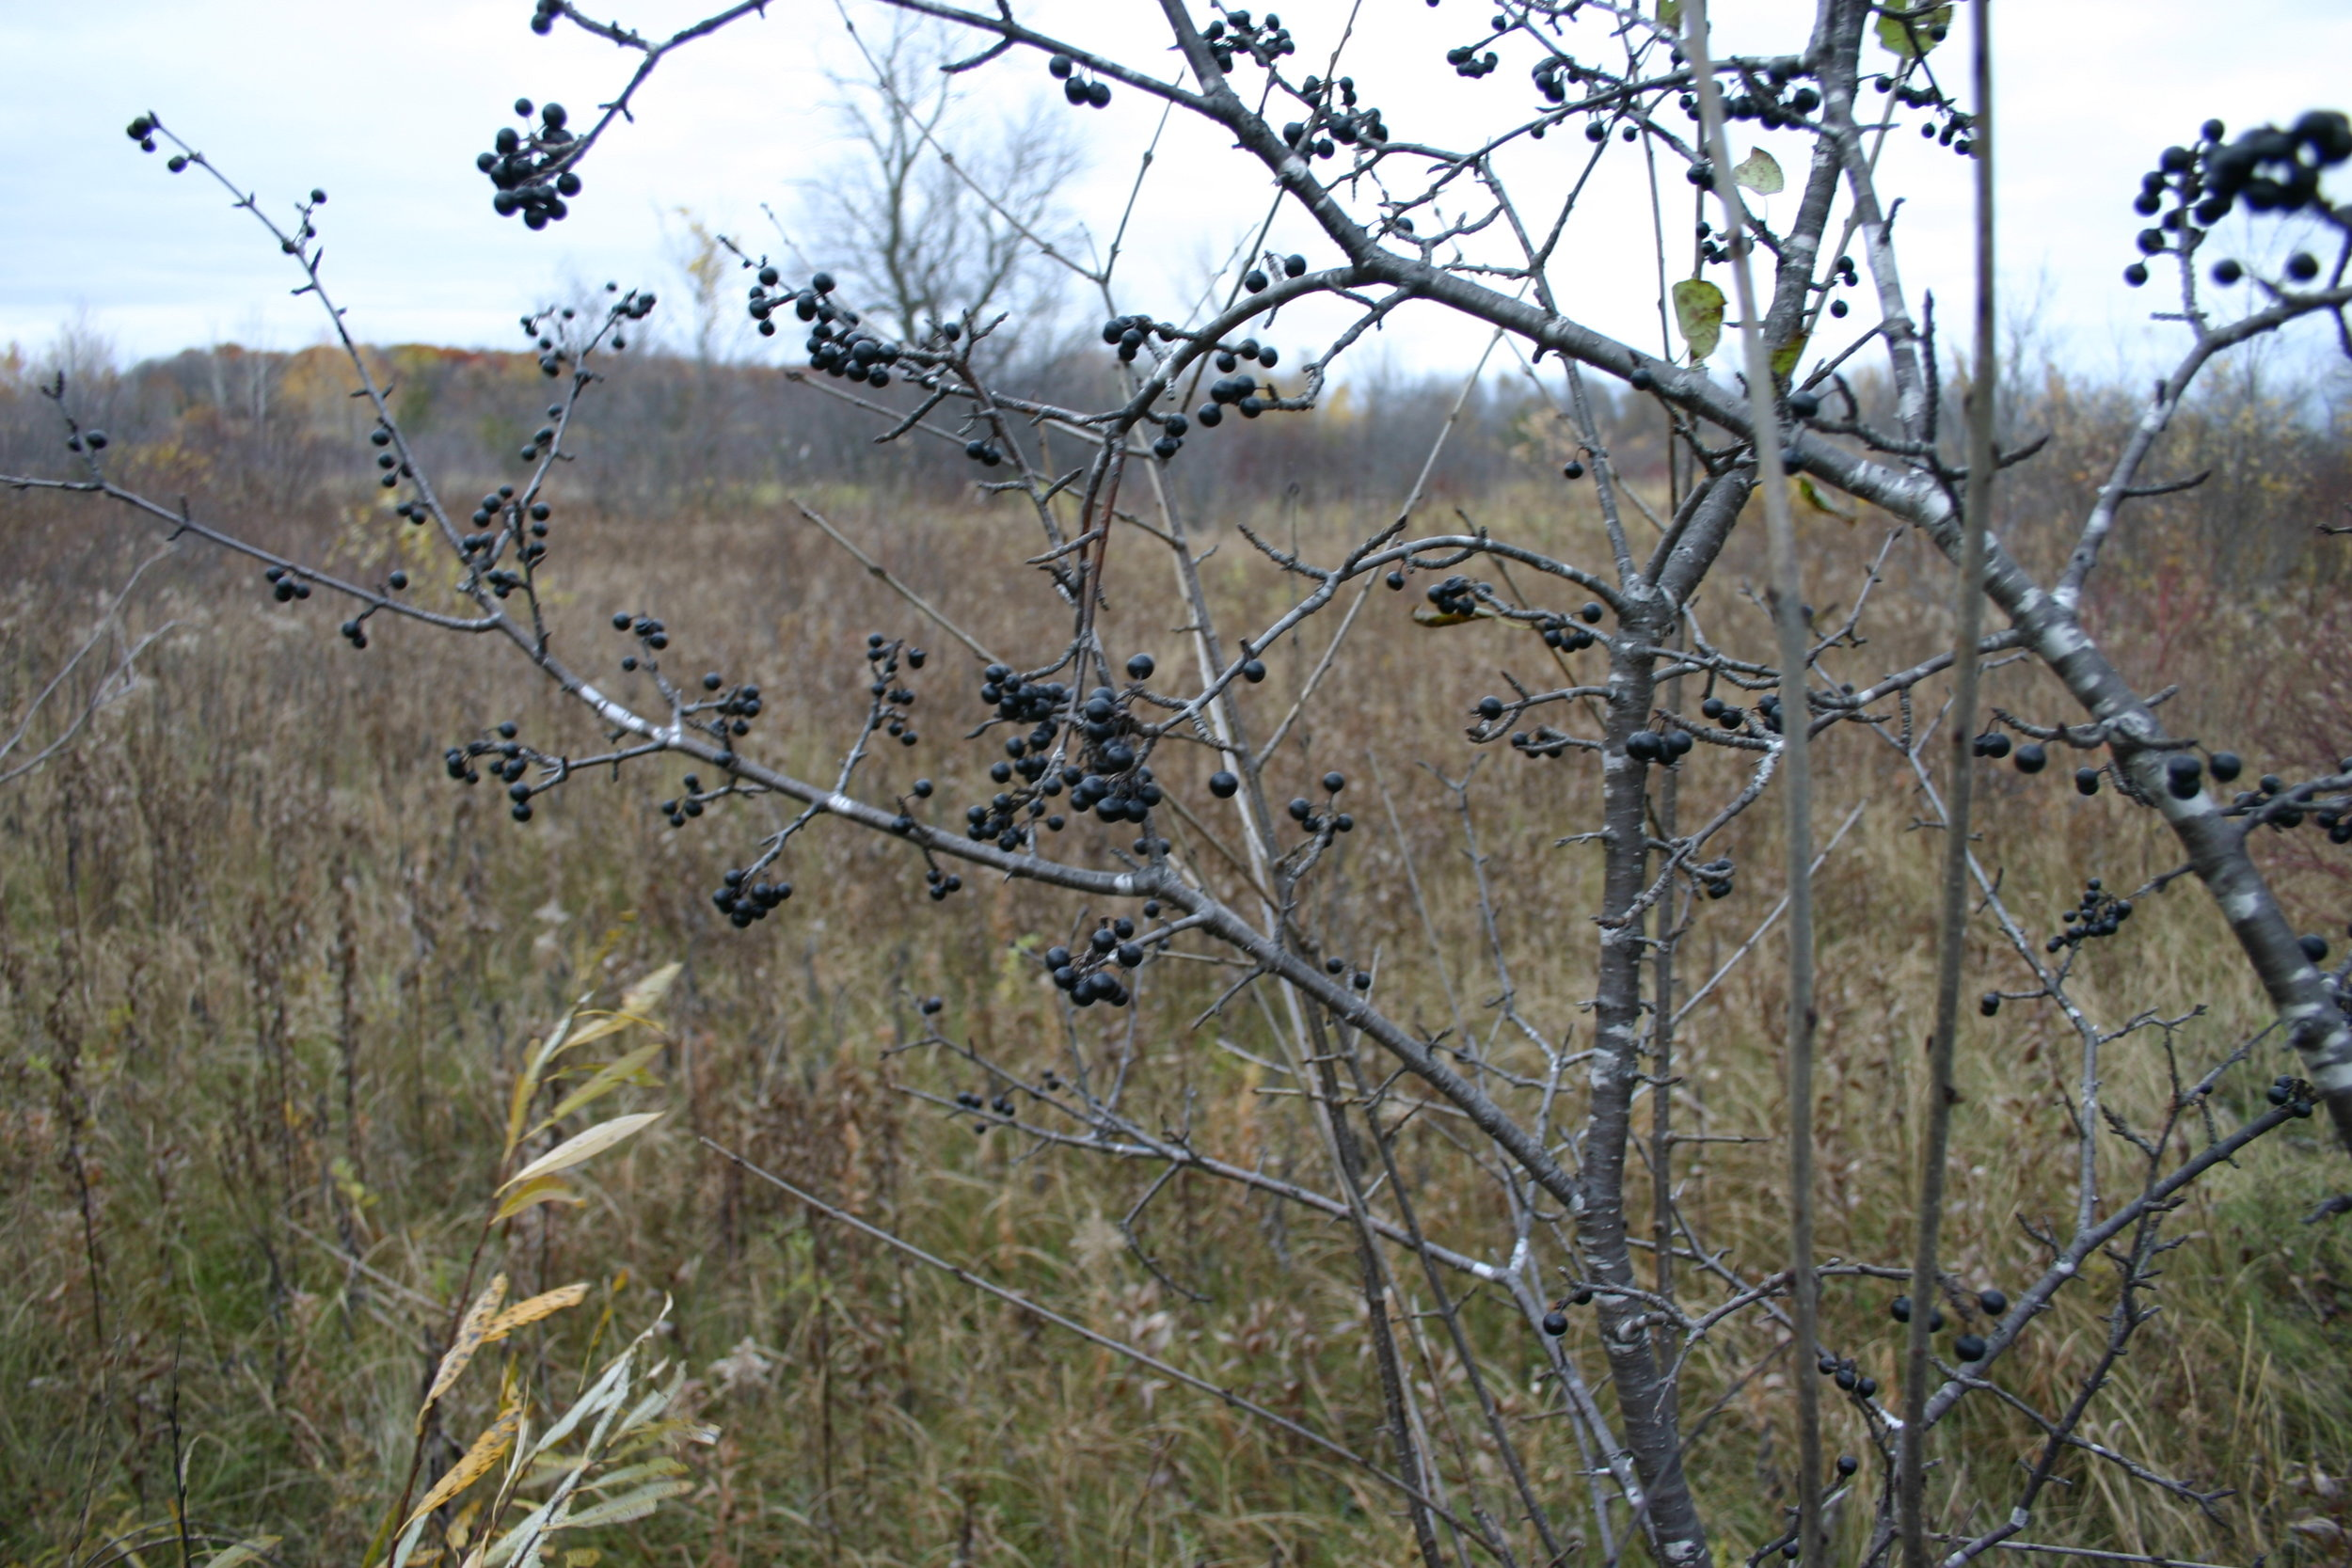 Buckthorn berries are attractive to certain birds, which eat and spread the plant. The berry producing plants are the ones we go after first.